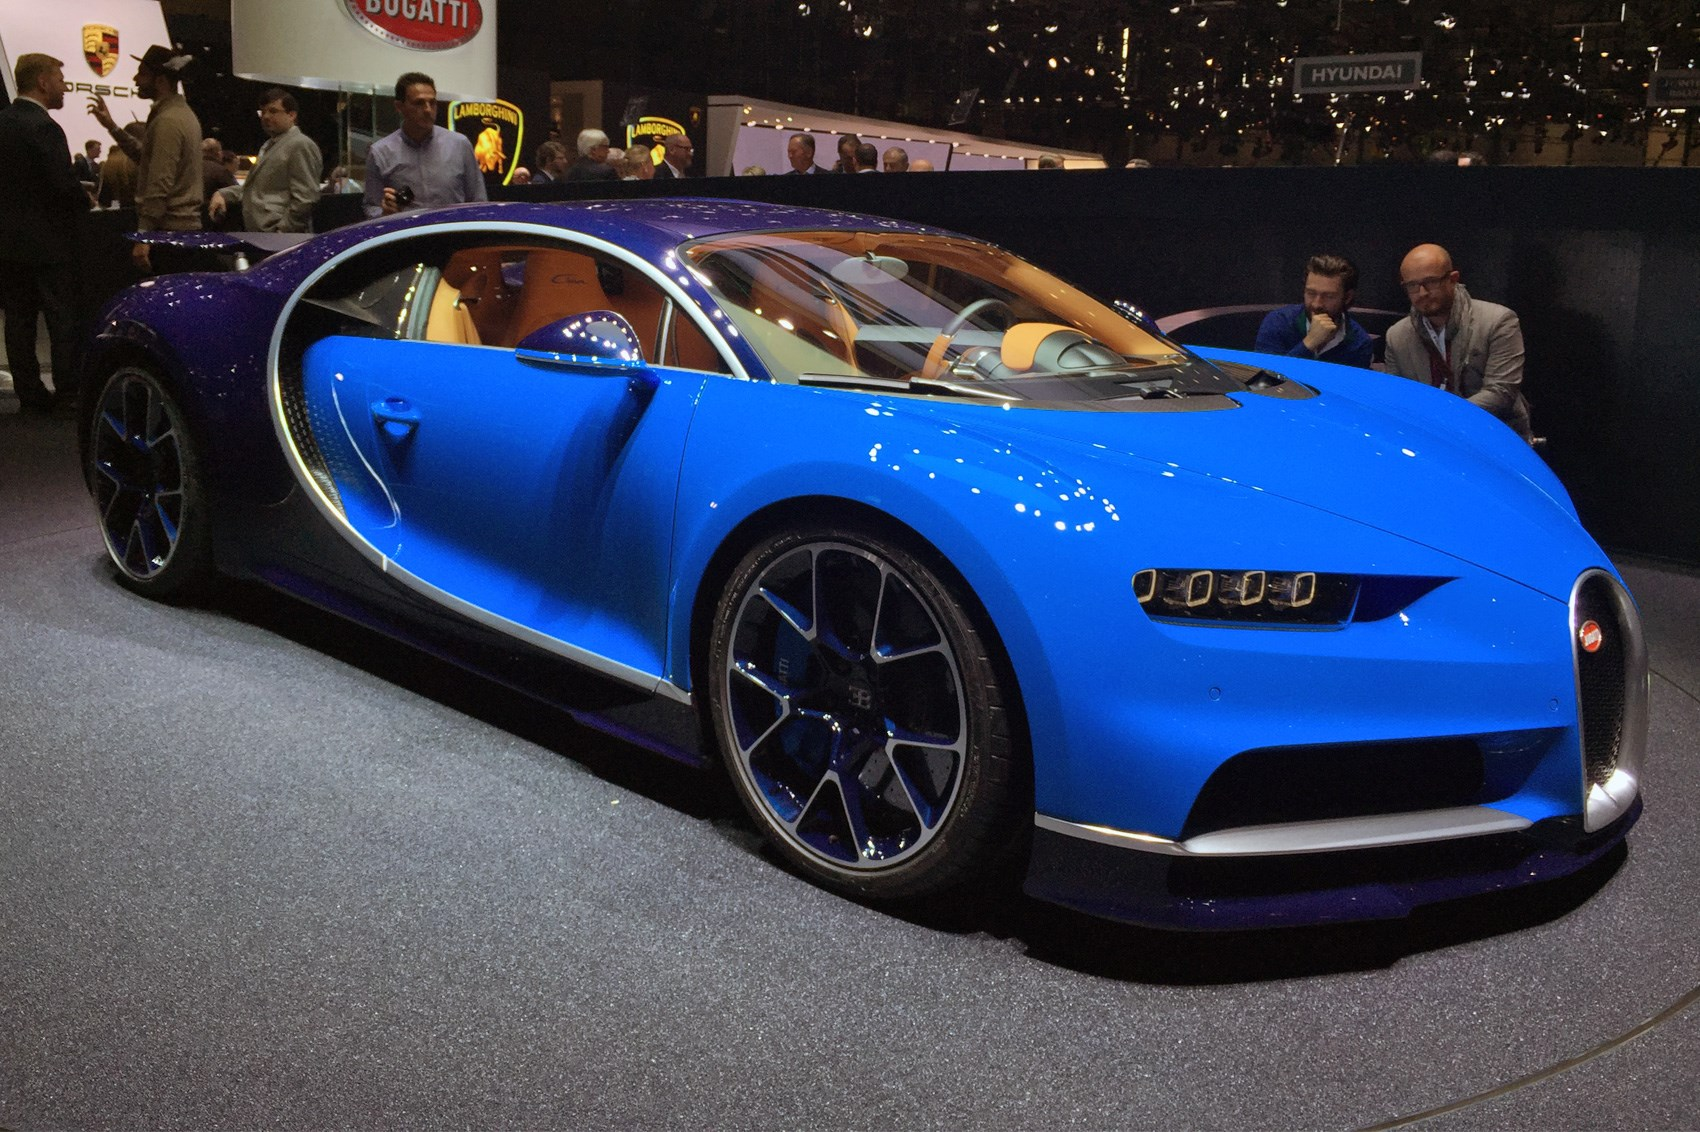 Ultrablogus  Fascinating Bugatti Is Go New Chiron Name Confirmed Here At Geneva  By  With Exquisite Bugatti Chiron Revealed At Geneva  The World Has A New Fastest Production Car With Lovely Mold On Car Interior Also Bmw E Interior Mods In Addition Premdor Interior Doors And How To Paint Bricks Interior As Well As How To Varnish Interior Doors Additionally Painting Interior Brick Walls White From Carmagazinecouk With Ultrablogus  Exquisite Bugatti Is Go New Chiron Name Confirmed Here At Geneva  By  With Lovely Bugatti Chiron Revealed At Geneva  The World Has A New Fastest Production Car And Fascinating Mold On Car Interior Also Bmw E Interior Mods In Addition Premdor Interior Doors From Carmagazinecouk